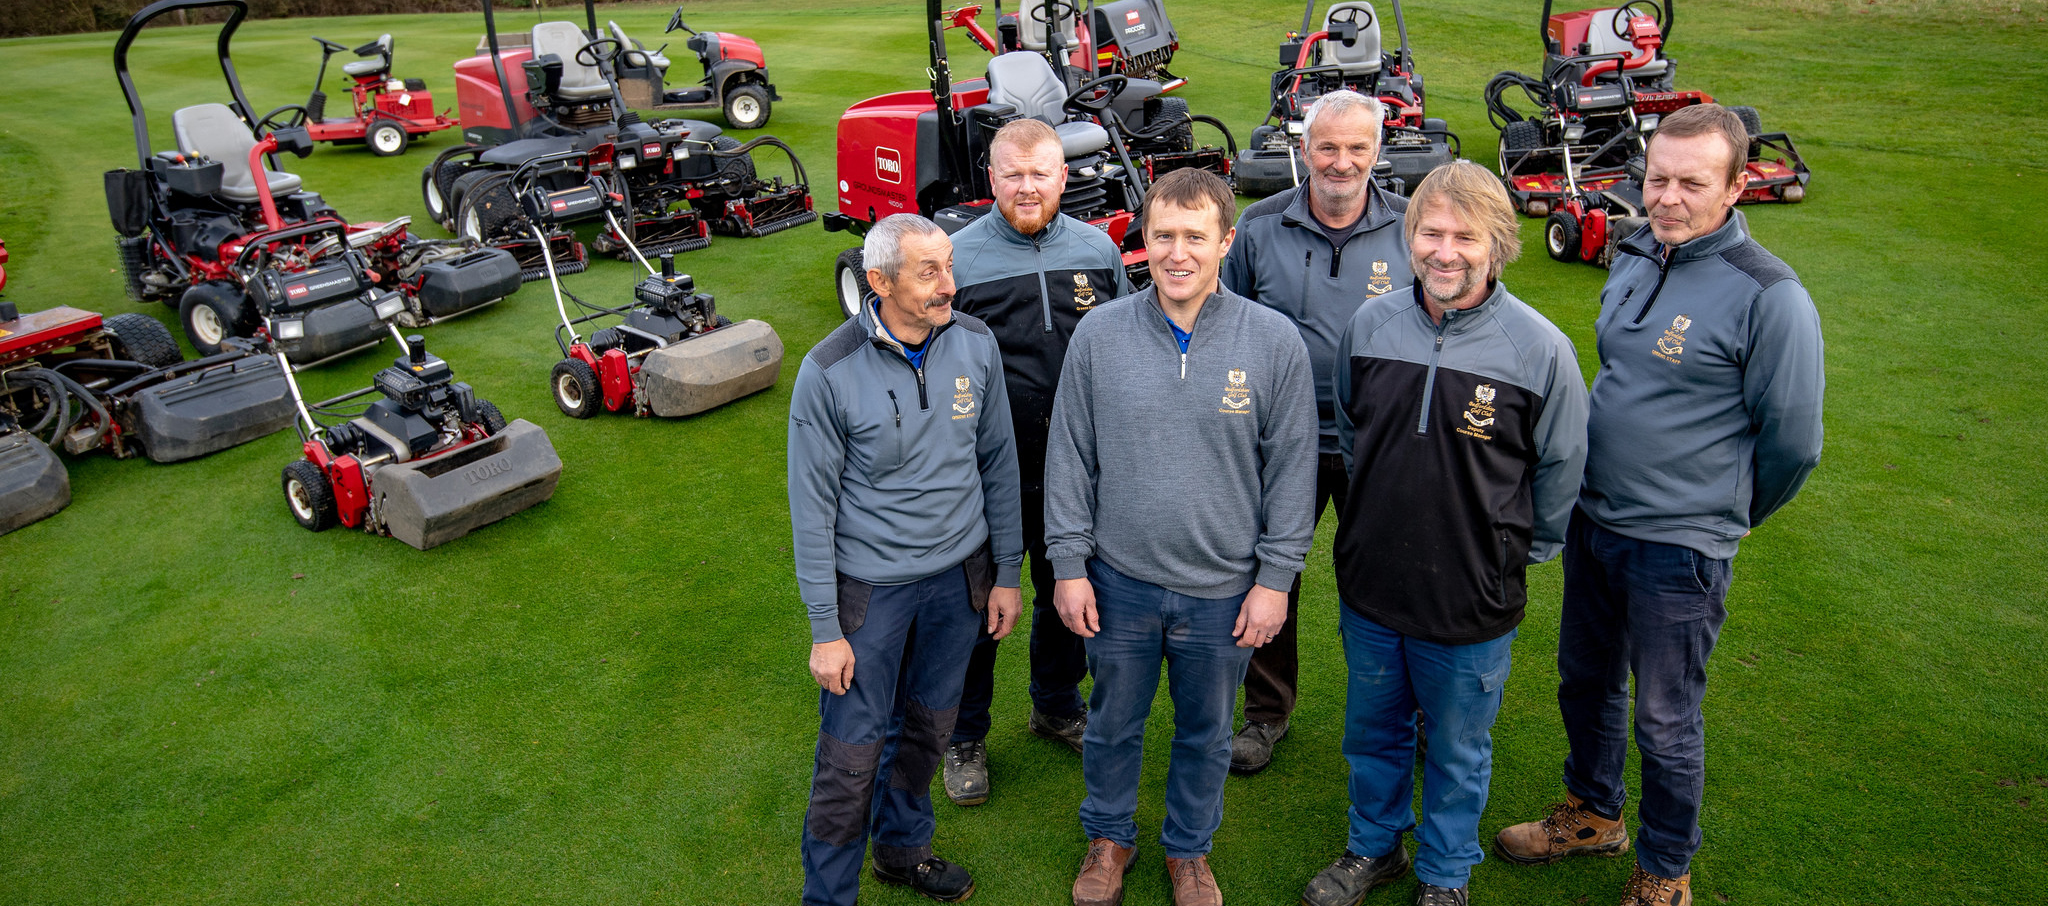 greenkeepers stood with equipment